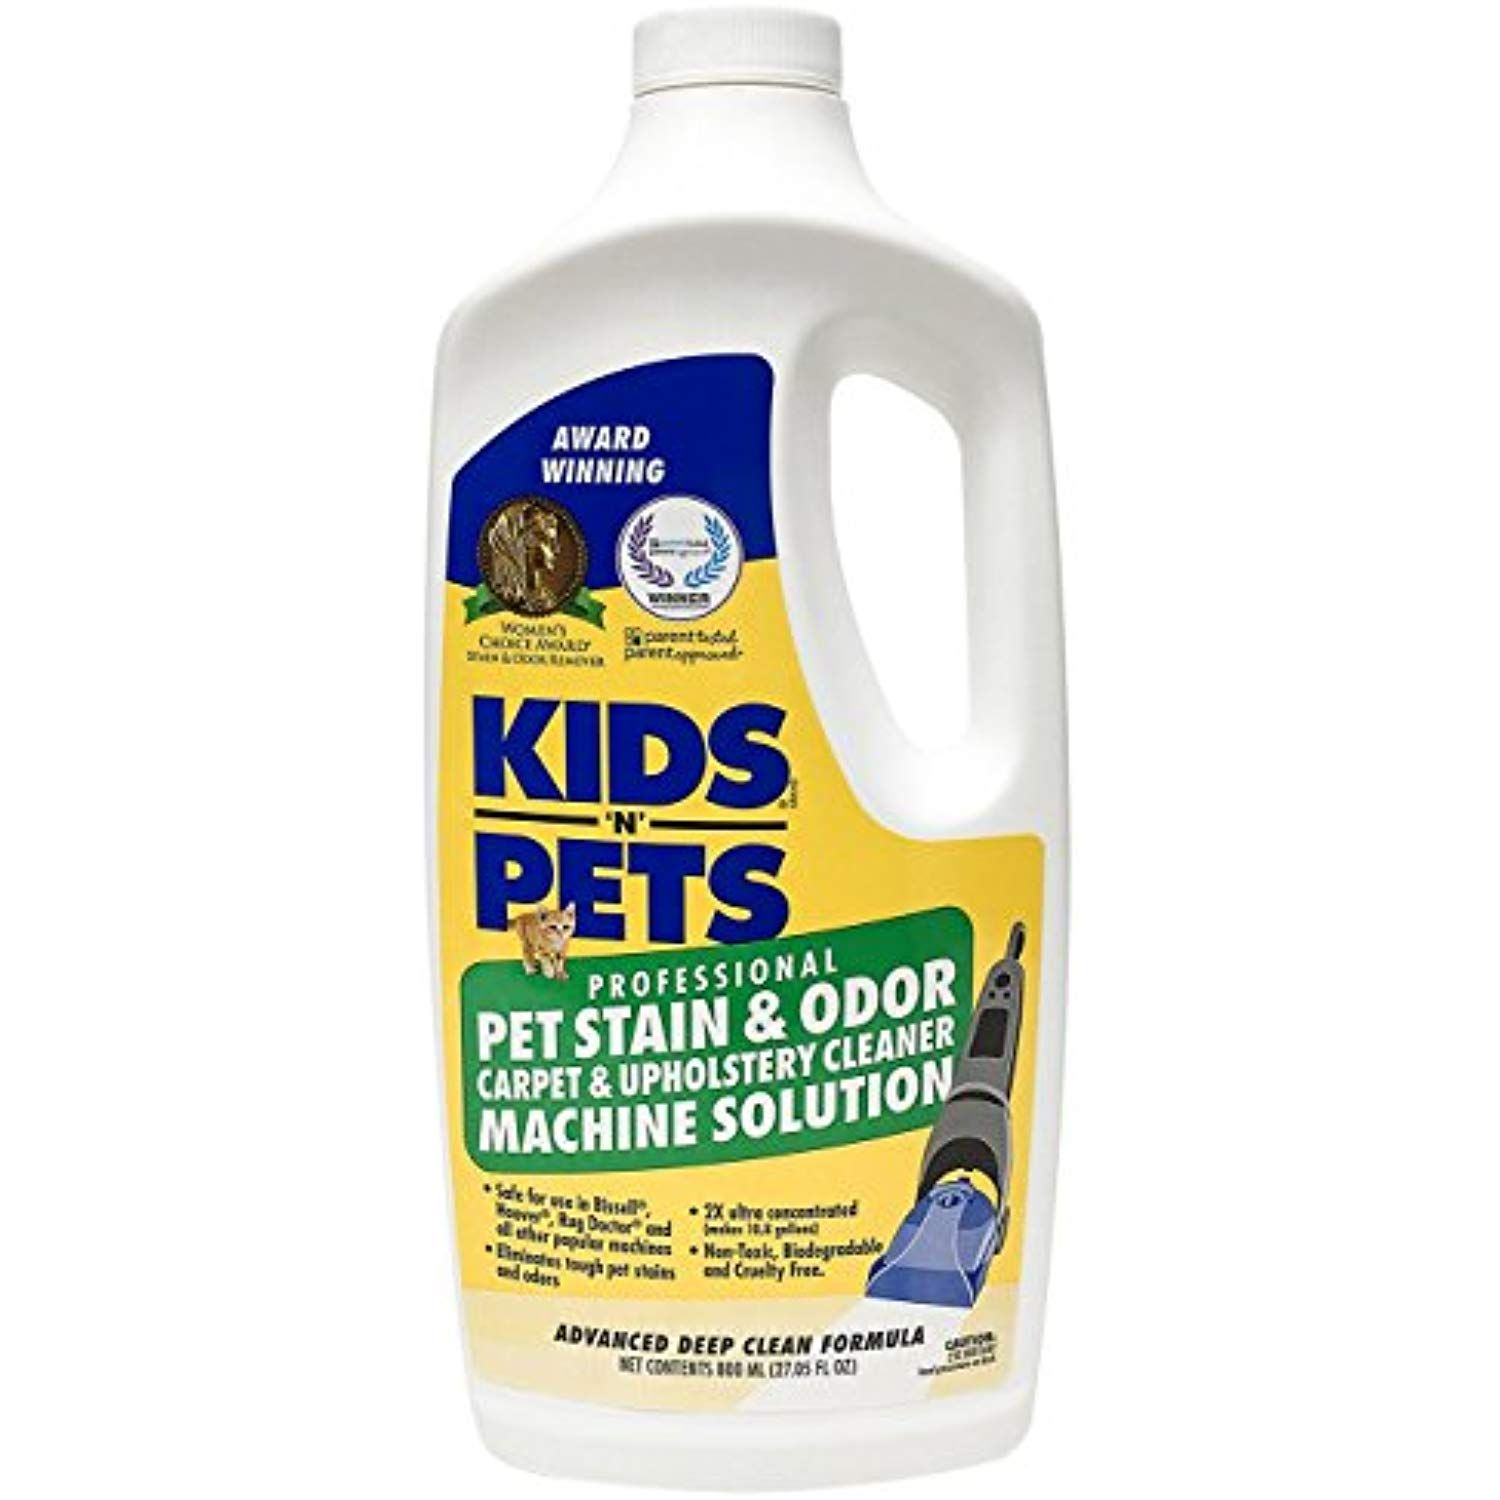 Kids N Pets Pet Stain And Odor Carpet And Upholstery Cleaner Machine Solution A 27 05 Oz 80 How To Clean Carpet Carpet And Upholstery Cleaner Pet Stains